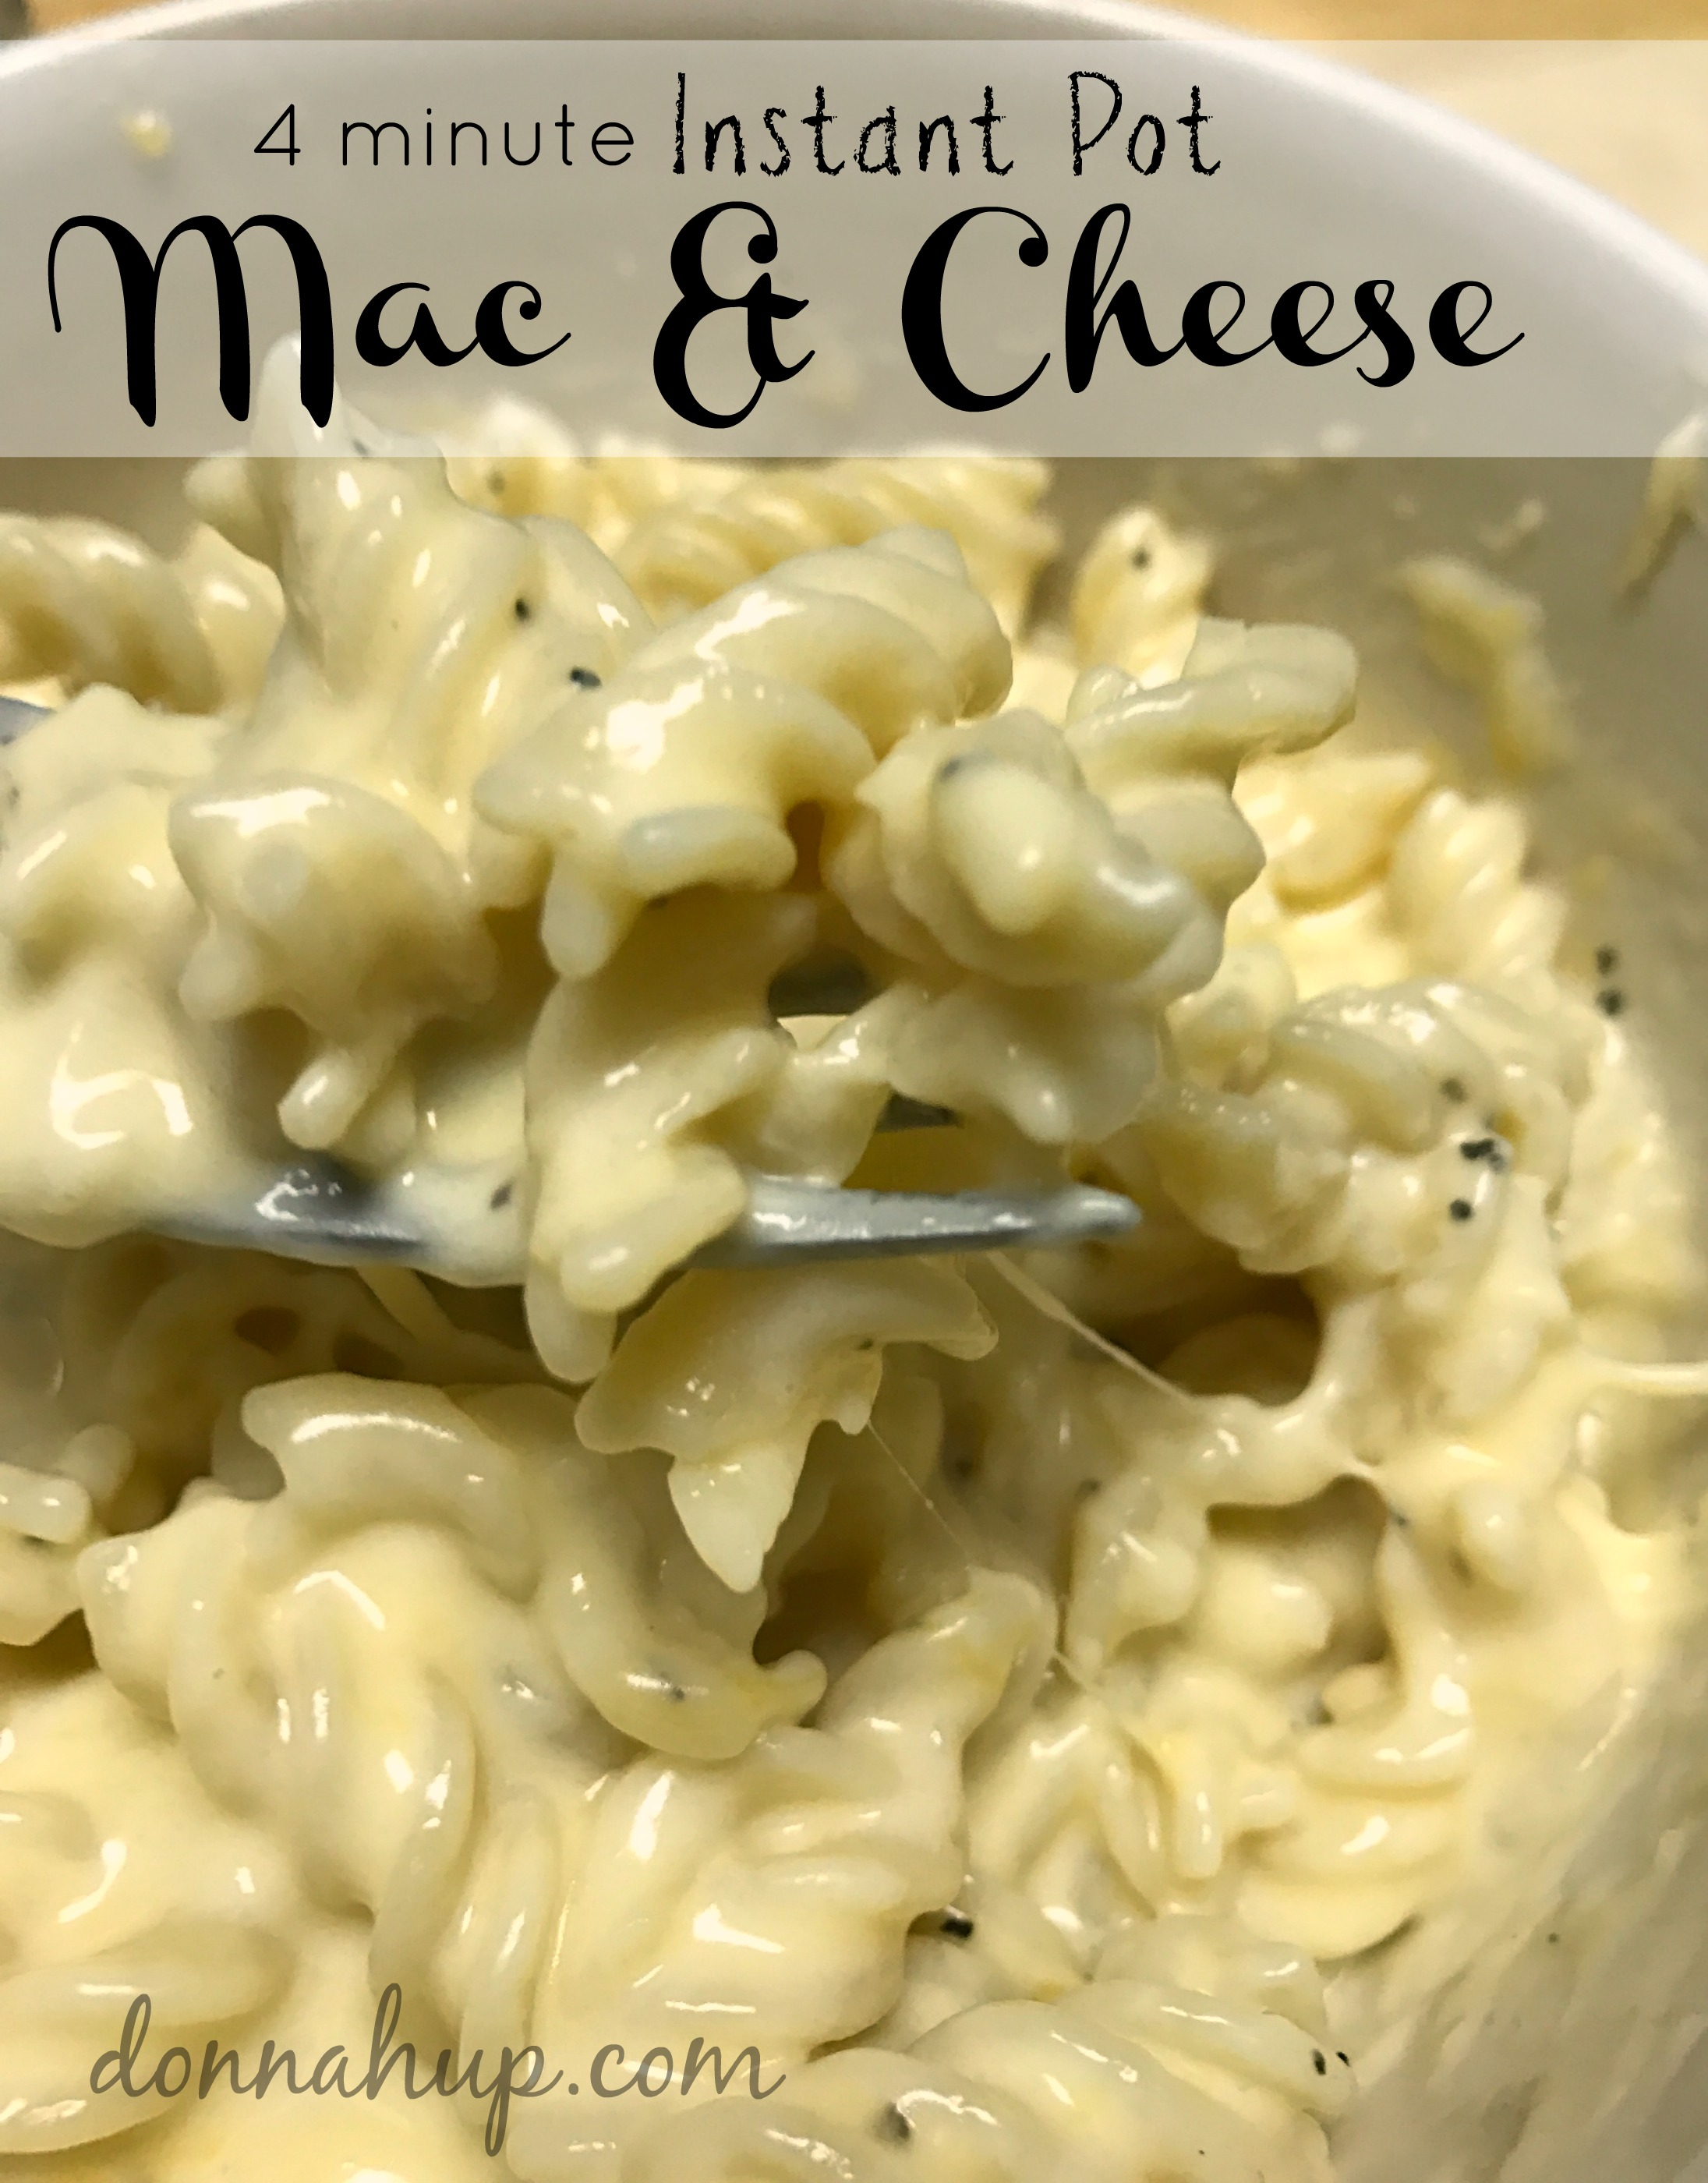 4 Minute Instant Pot Macaroni and Cheese